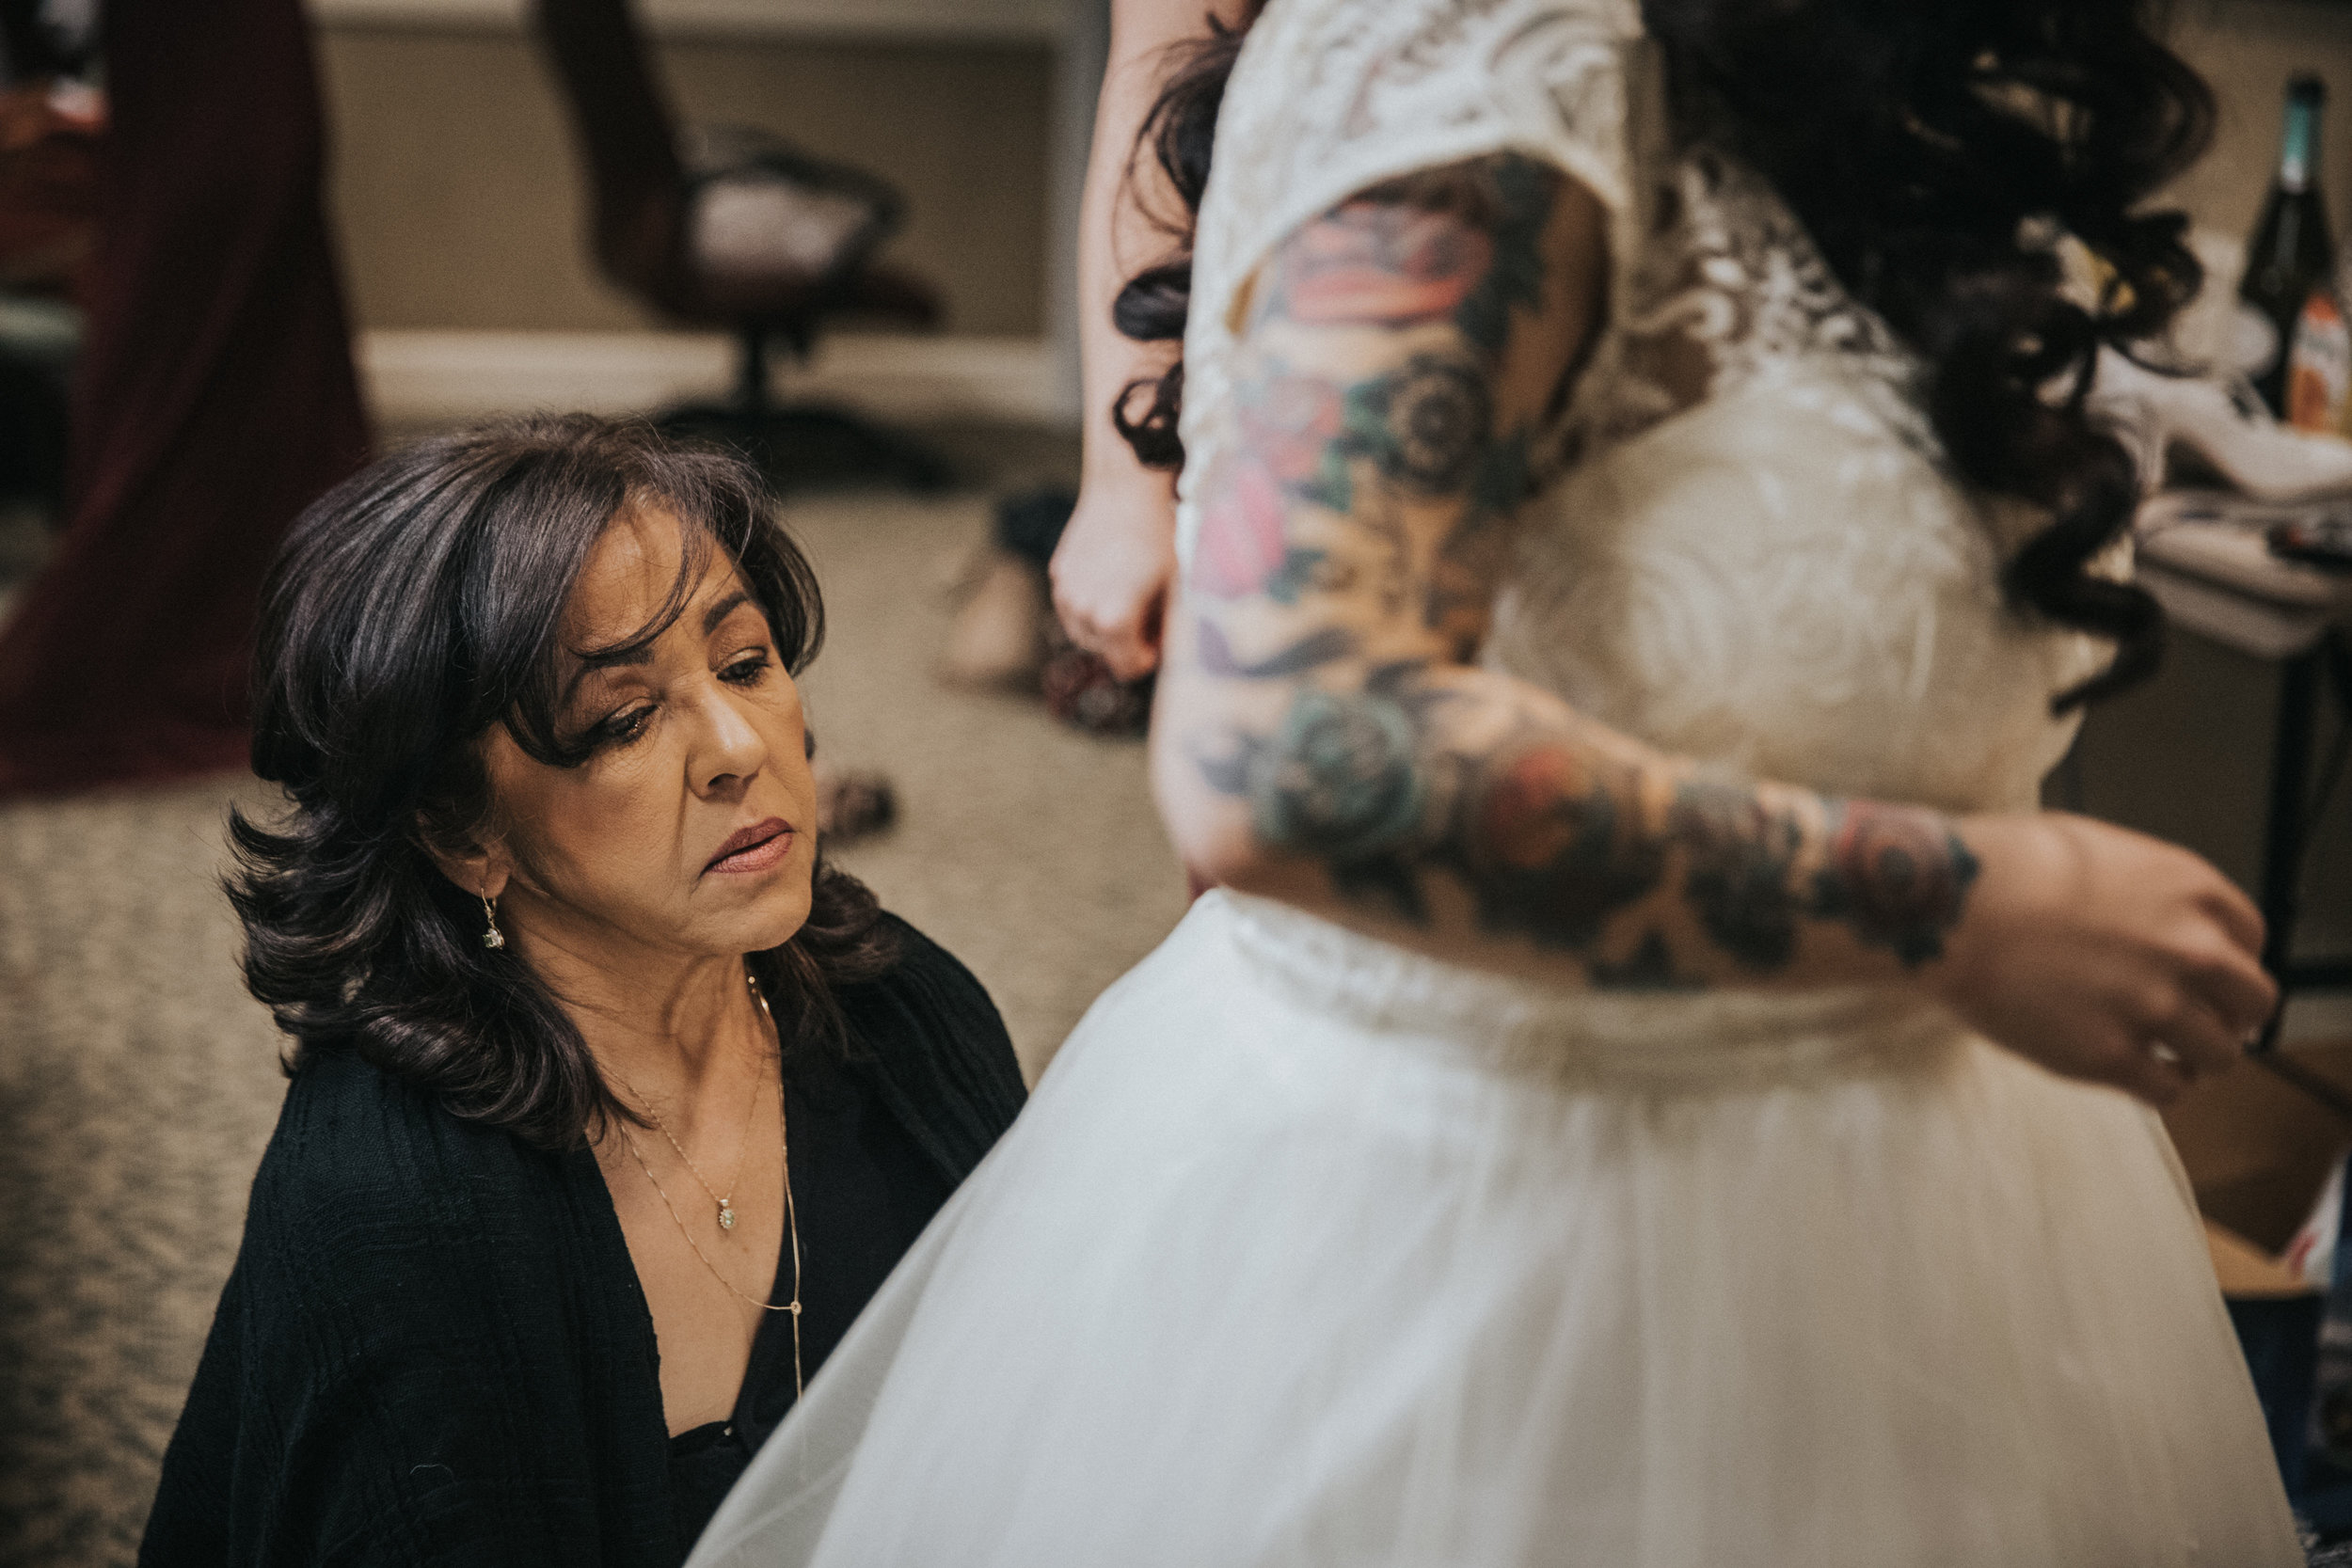 New-Jersey-Wedding-Photographer-ReceptionCenter-Valeria&Mike-Getting-Ready (53 of 76).jpg